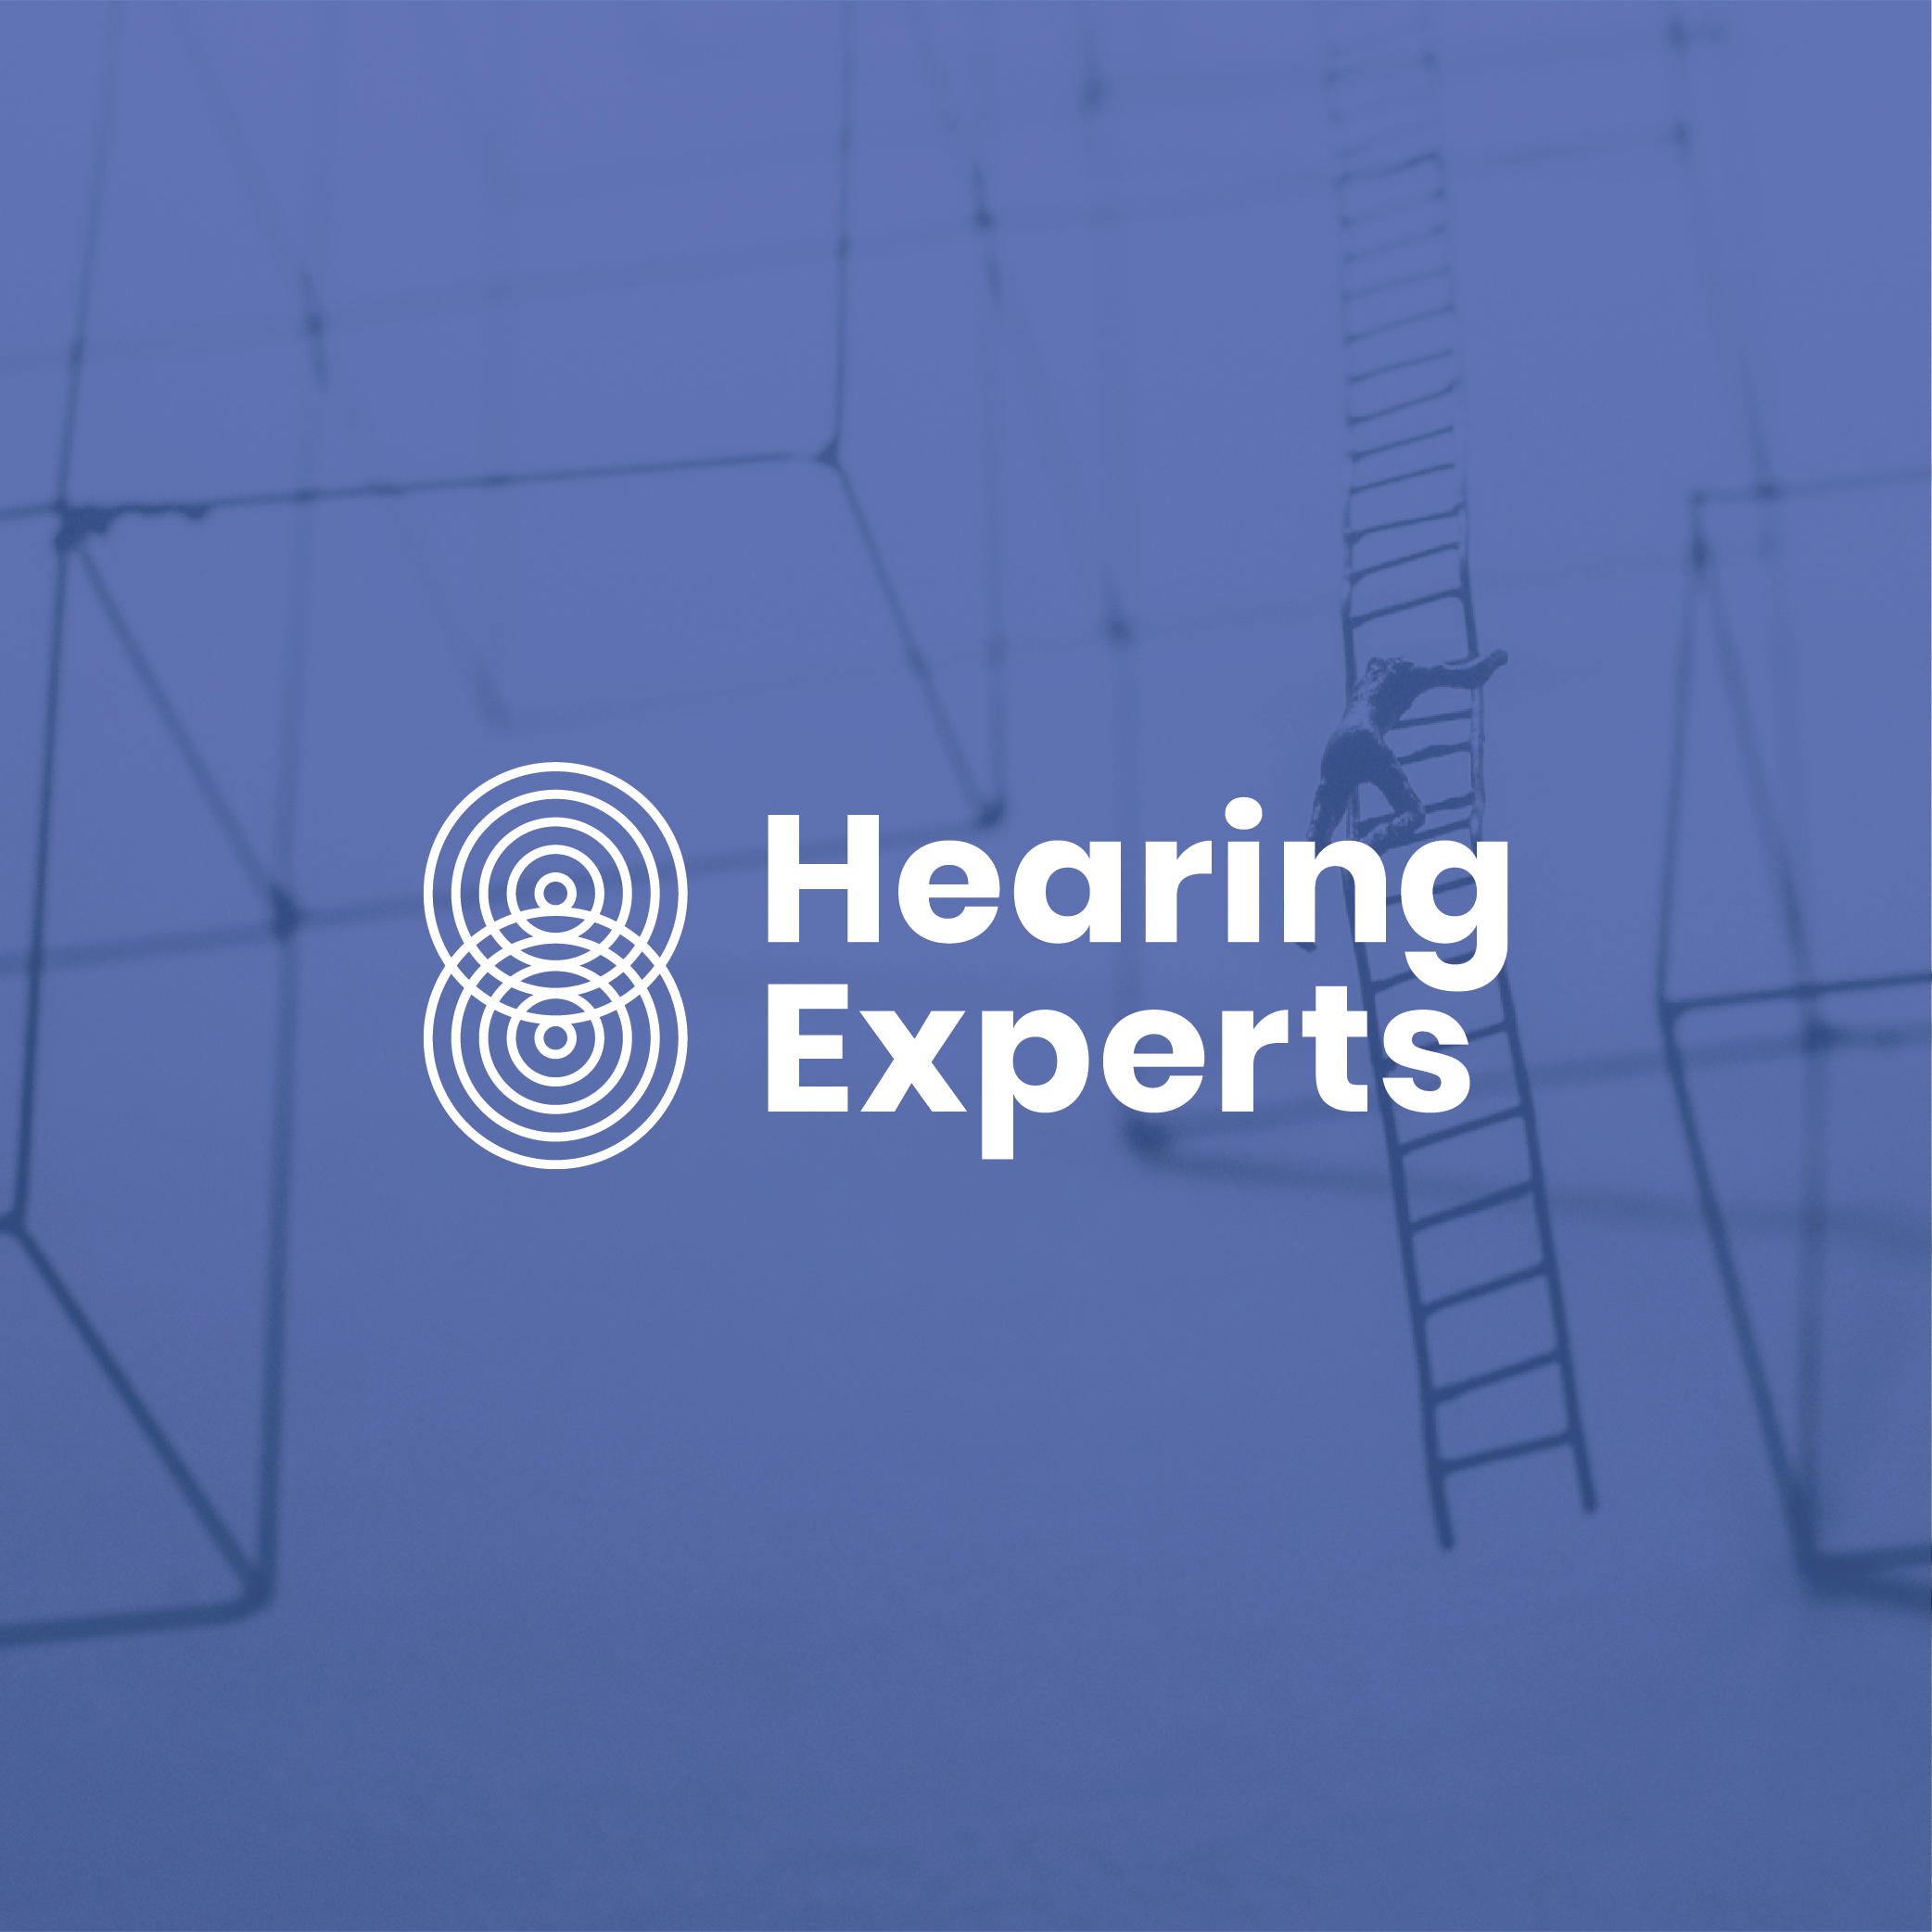 hearing-experts-shareable-graphics-01.png